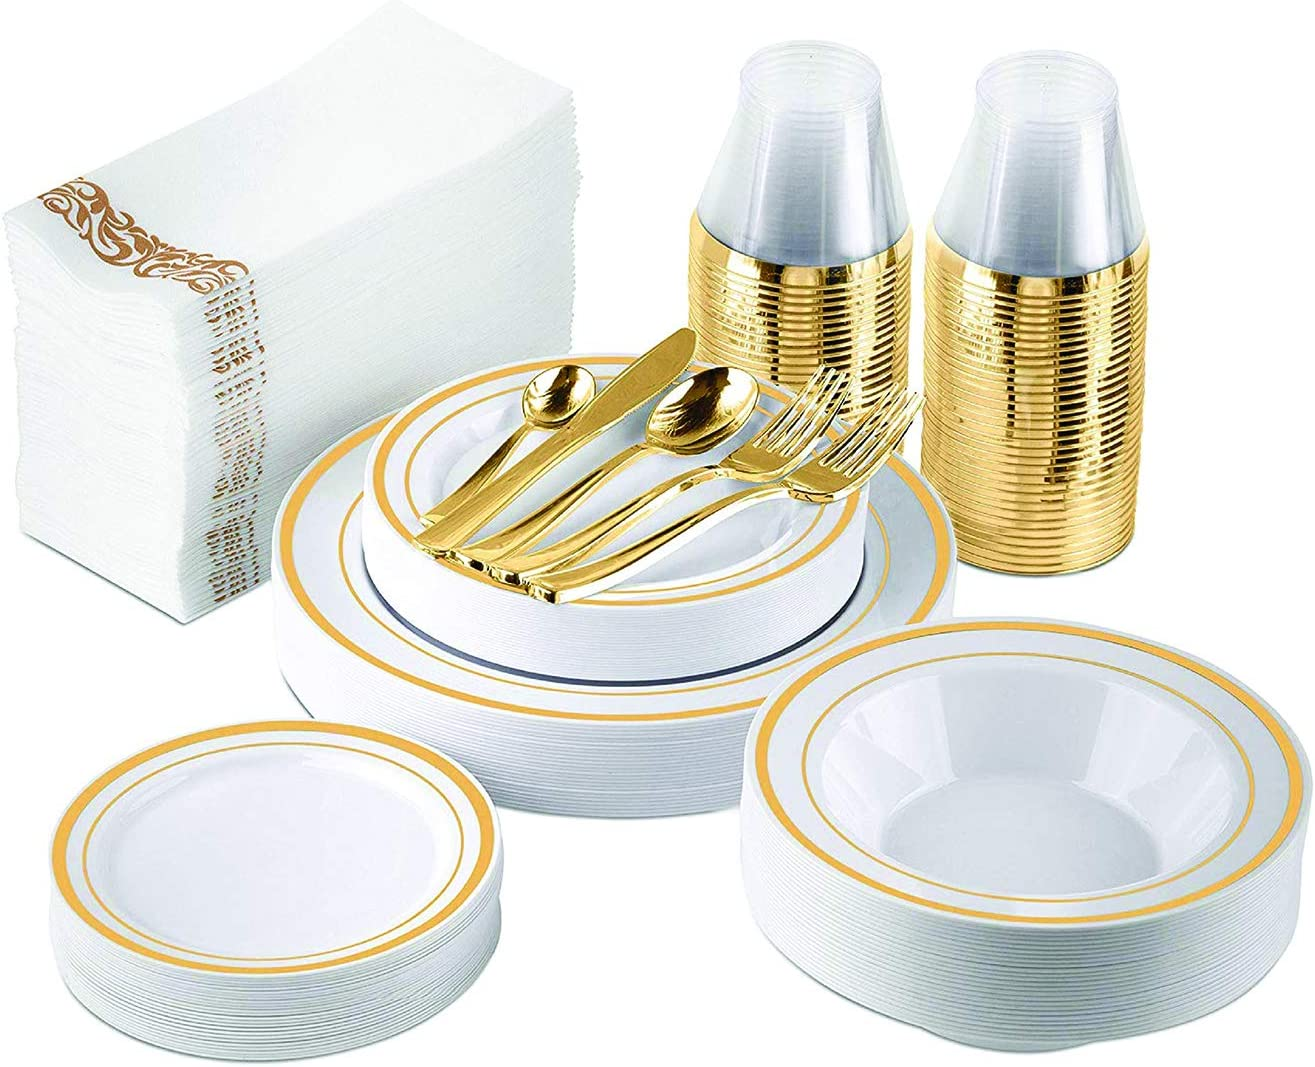 Nice Plastic Plates Gold - 300 Piece Set for 25 Guests Includes 75 Disposable Plates, 50 Forks, 25 Knives, 25 Spoons, 25 Mini Spoons, 25 Bowls, 25 Gold 9 Oz Cups, 50 Guest Towels (Gold Rim)